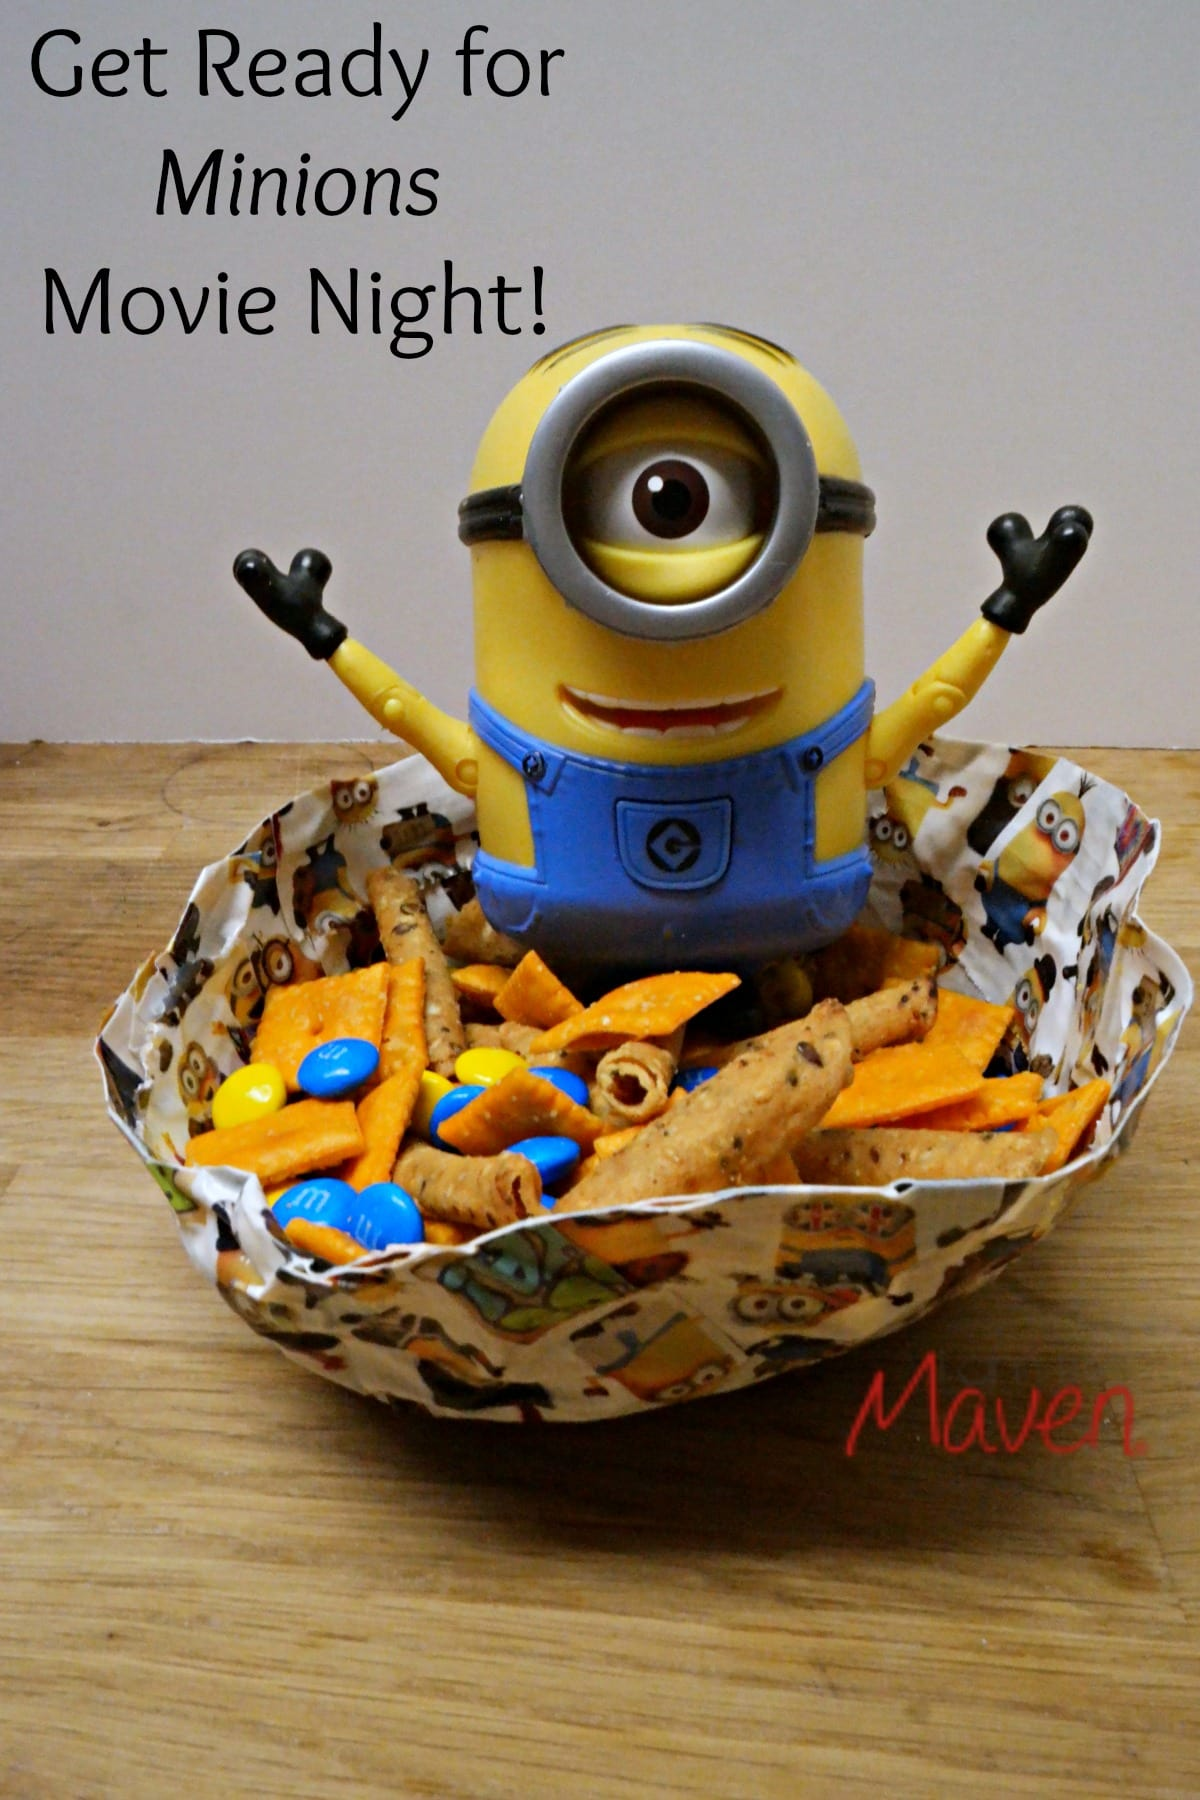 Get ready for Minions movie night with these two easy Minions Movie Snacks! #MinionMovieNight AD